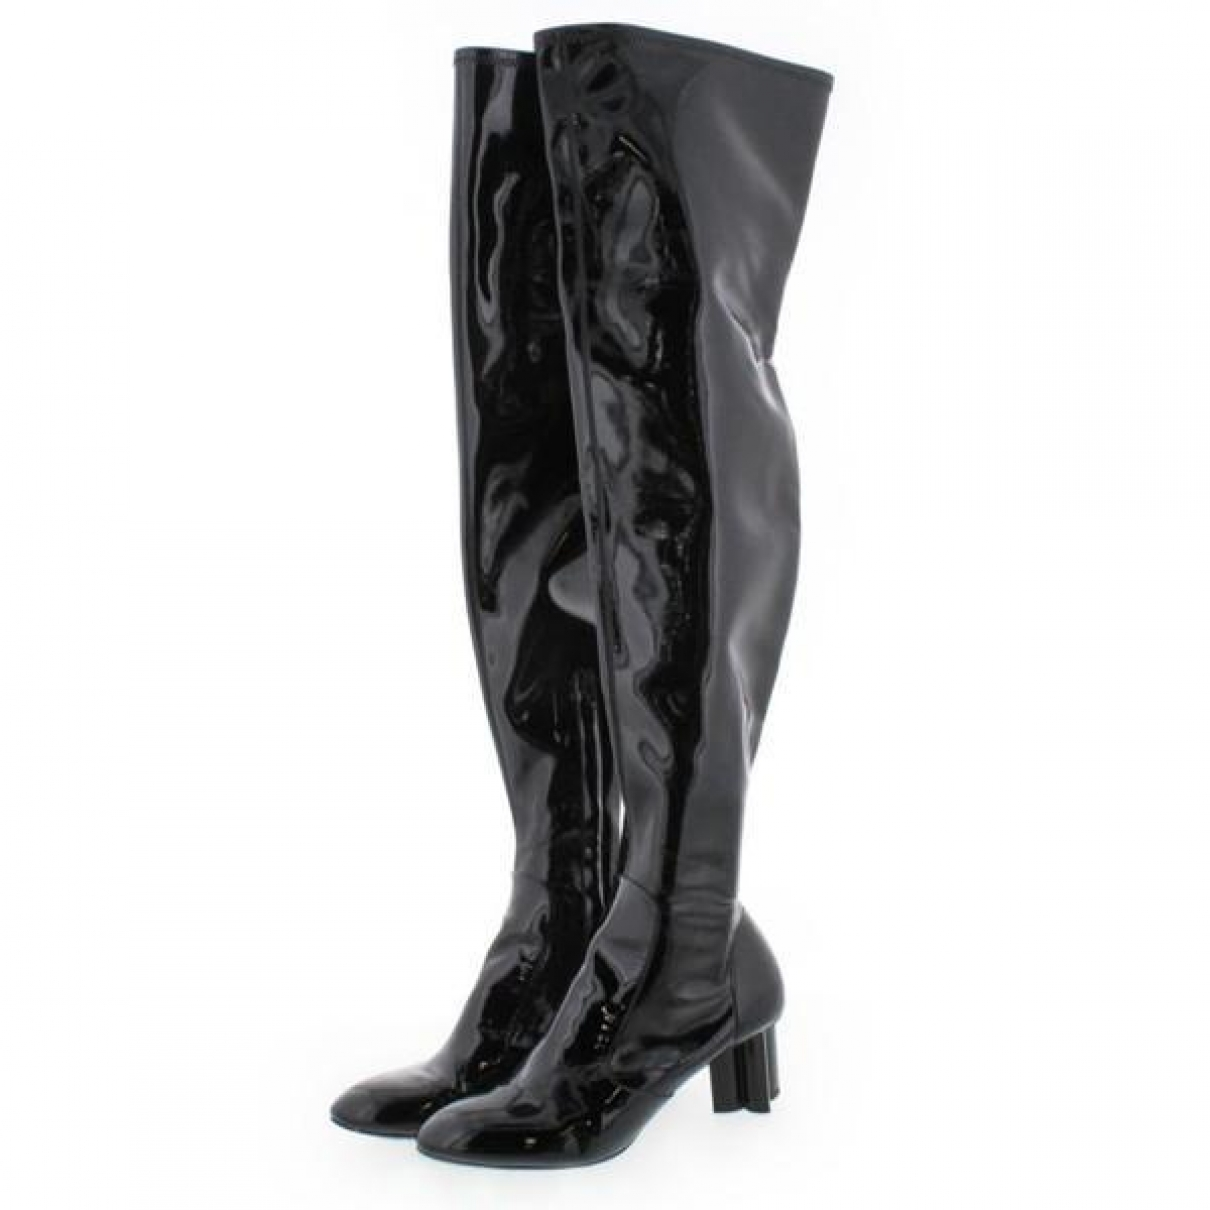 Louis Vuitton \N Black Patent leather Boots for Women 37.5 IT